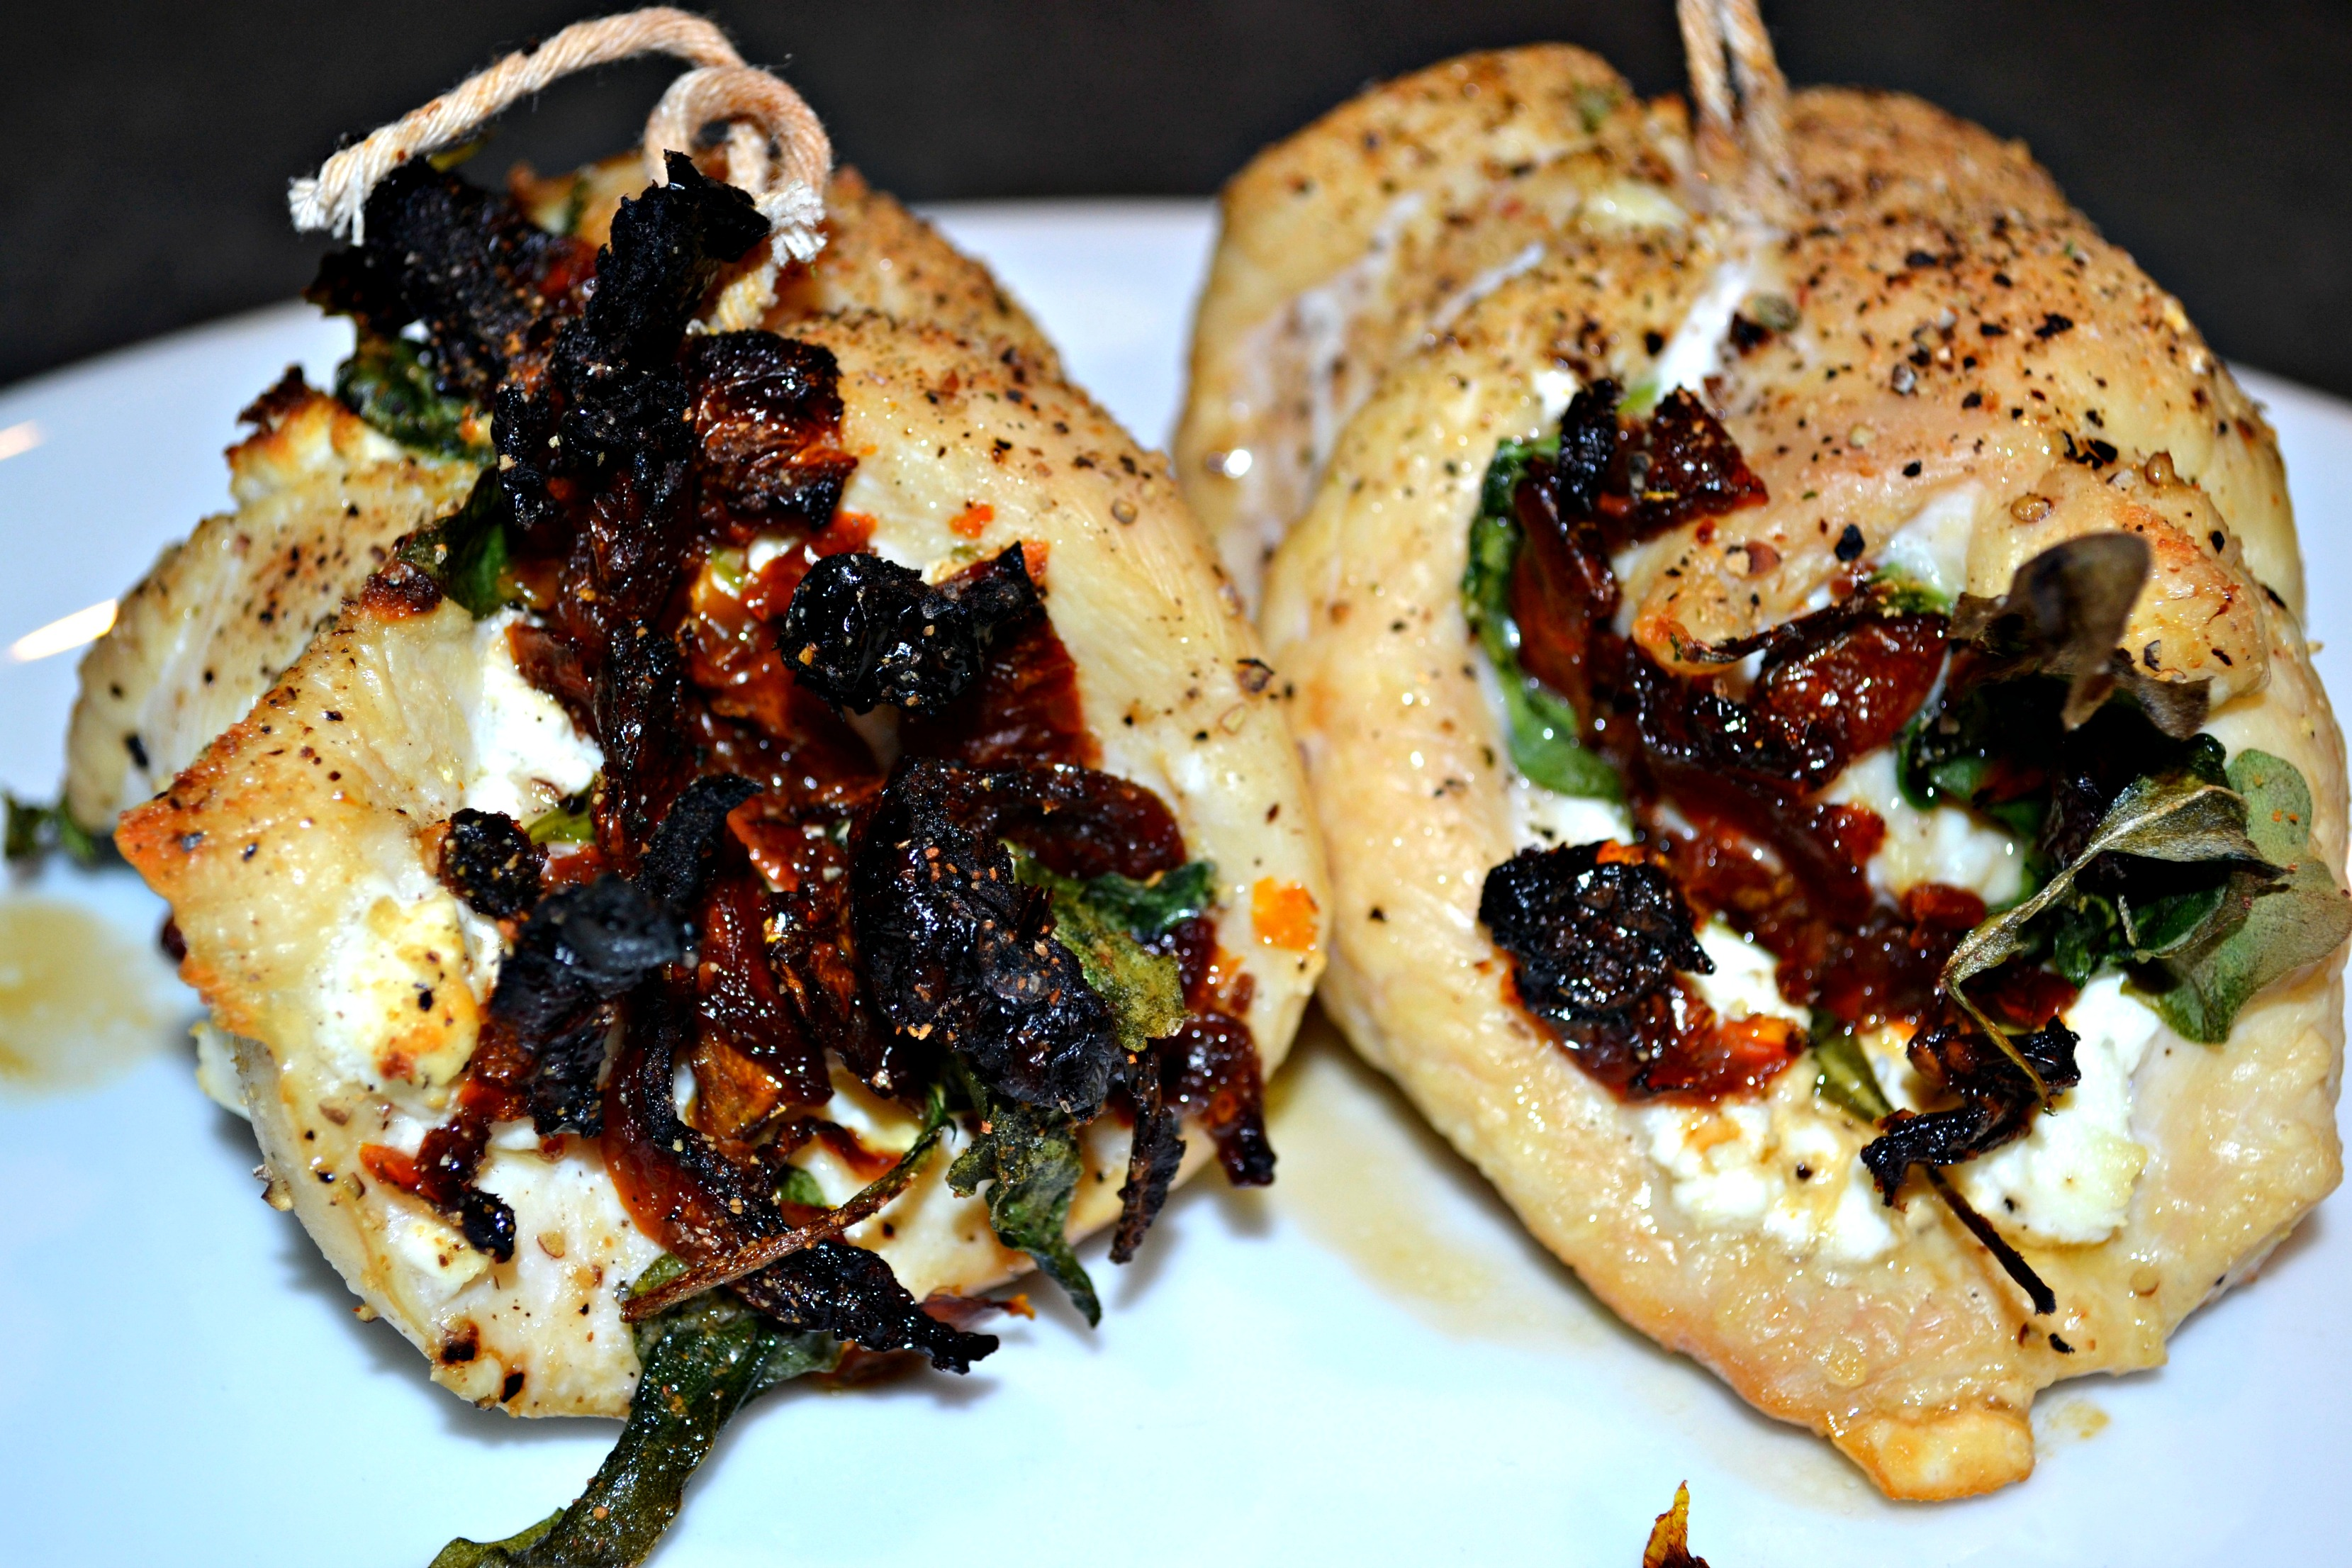 Sun-Dried Tomato, Goat Cheese and Arugula Chicken Roulades | A Hint of ...